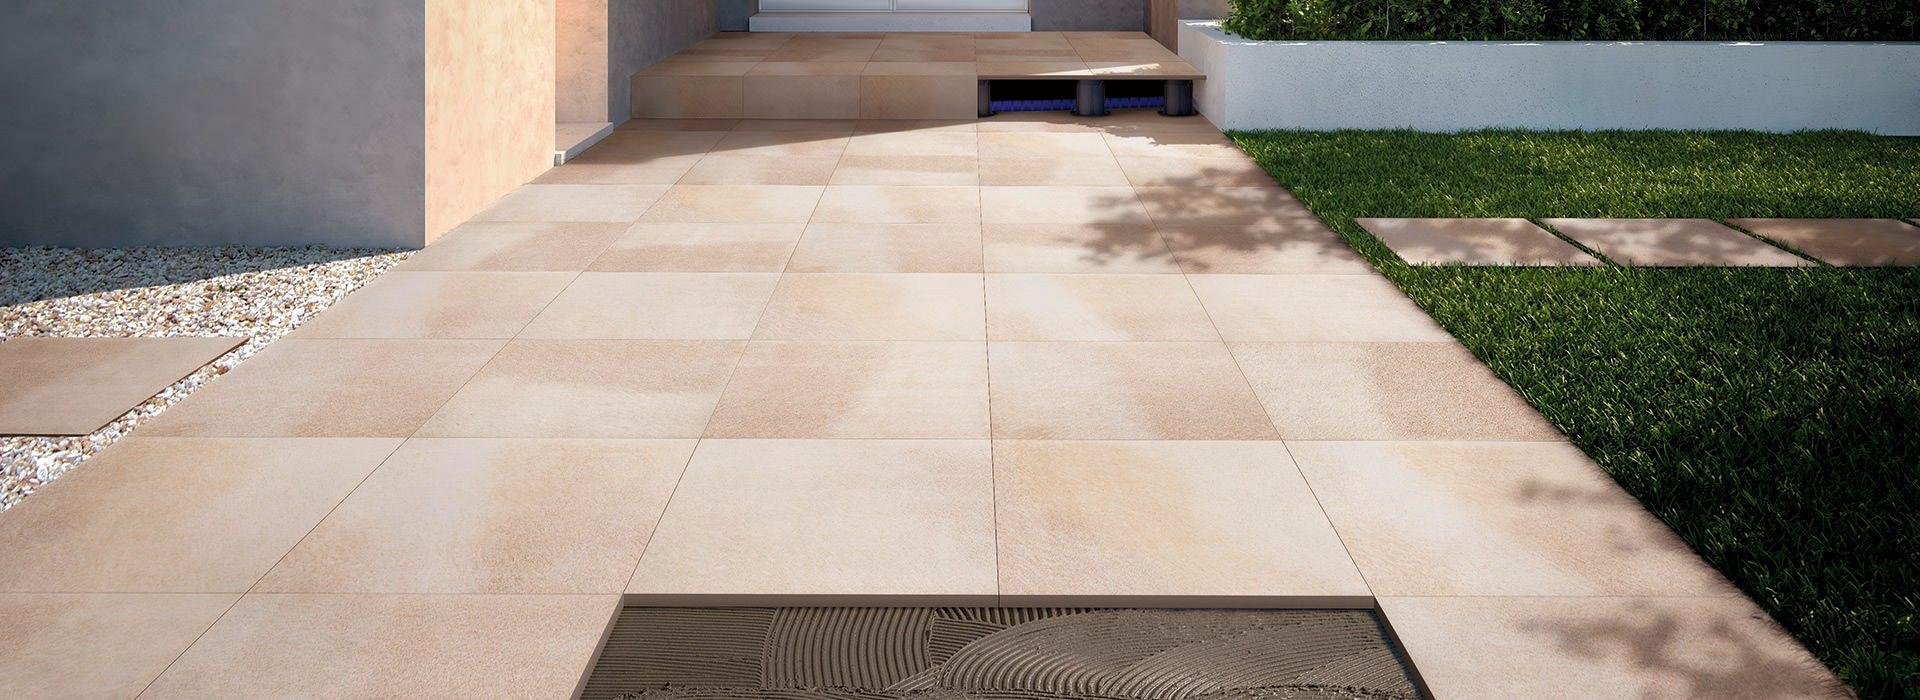 Outdoor Pavements Tiles For Raised Floors Fmg Fabbrica Marmi E